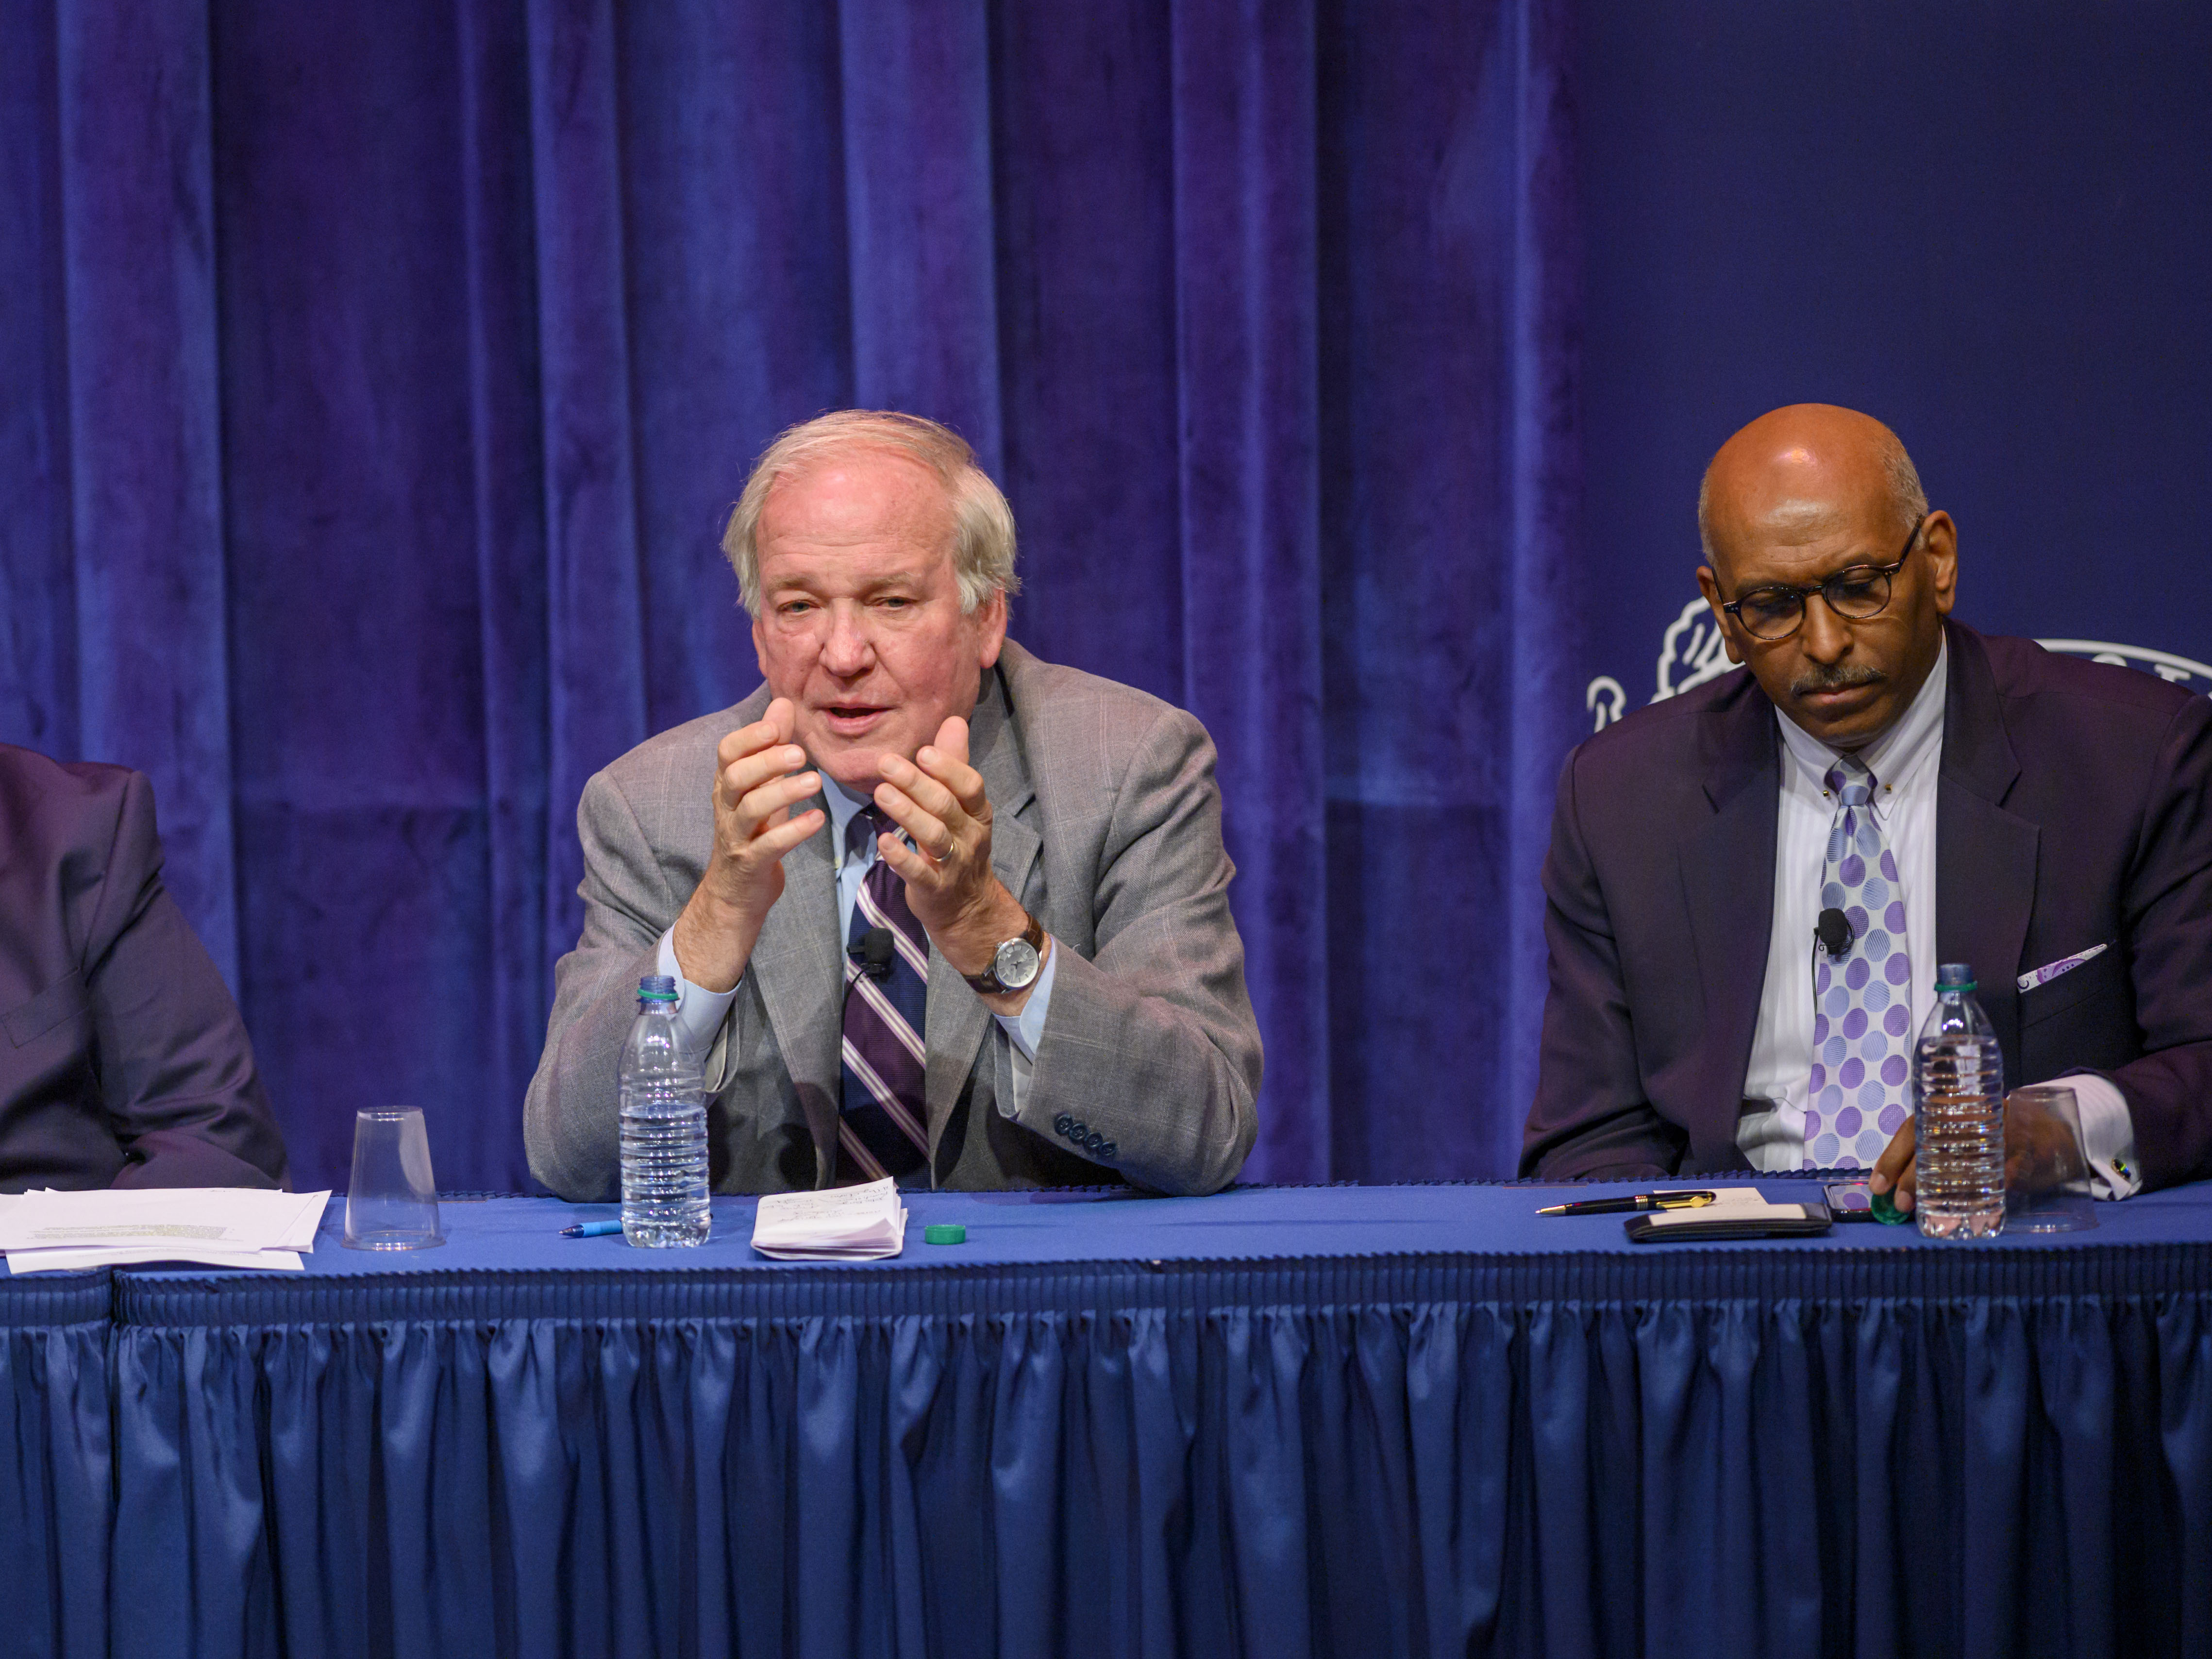 Panelist Michael McCurry offers insights on the intersection of religion and the upcoming U.S. Presidential election.